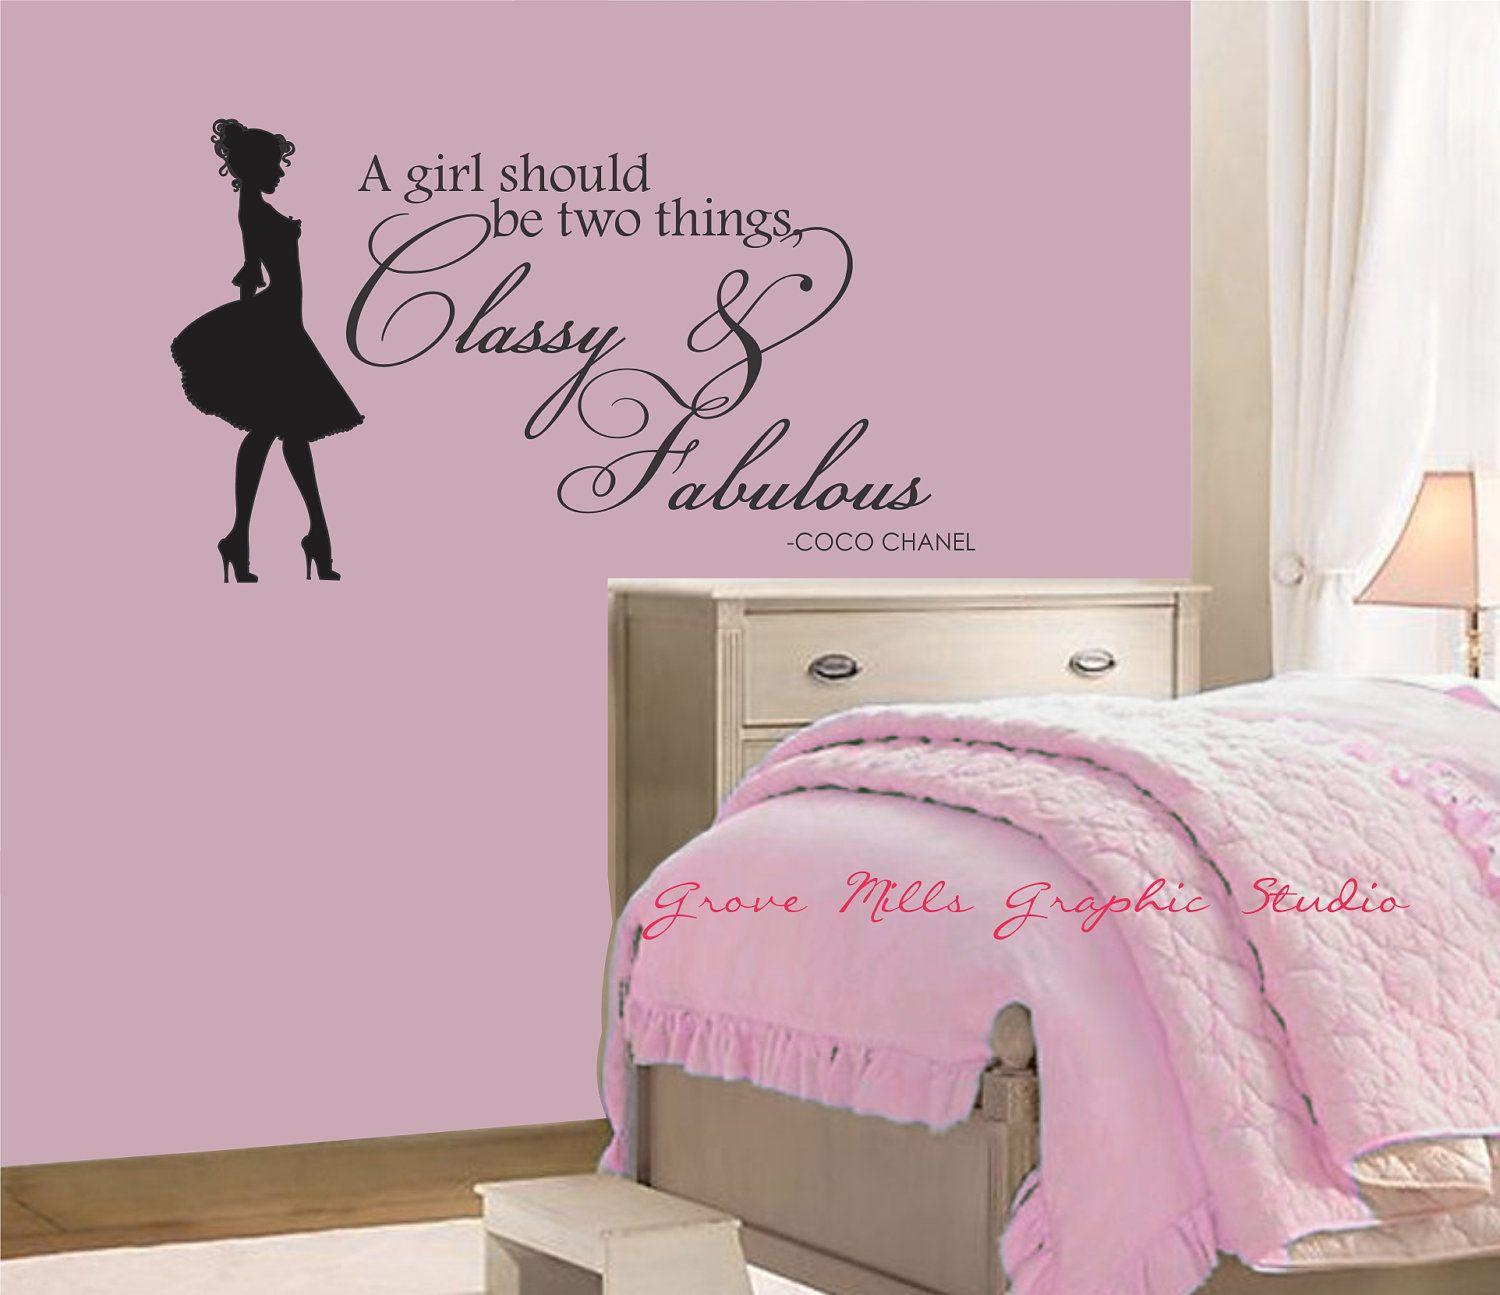 Classy and fabulous wall decal coco chanel wall quote girls classy and fabulous wall decal coco chanel wall quote girls room wall decal girls room wall art girl wall decor amipublicfo Image collections